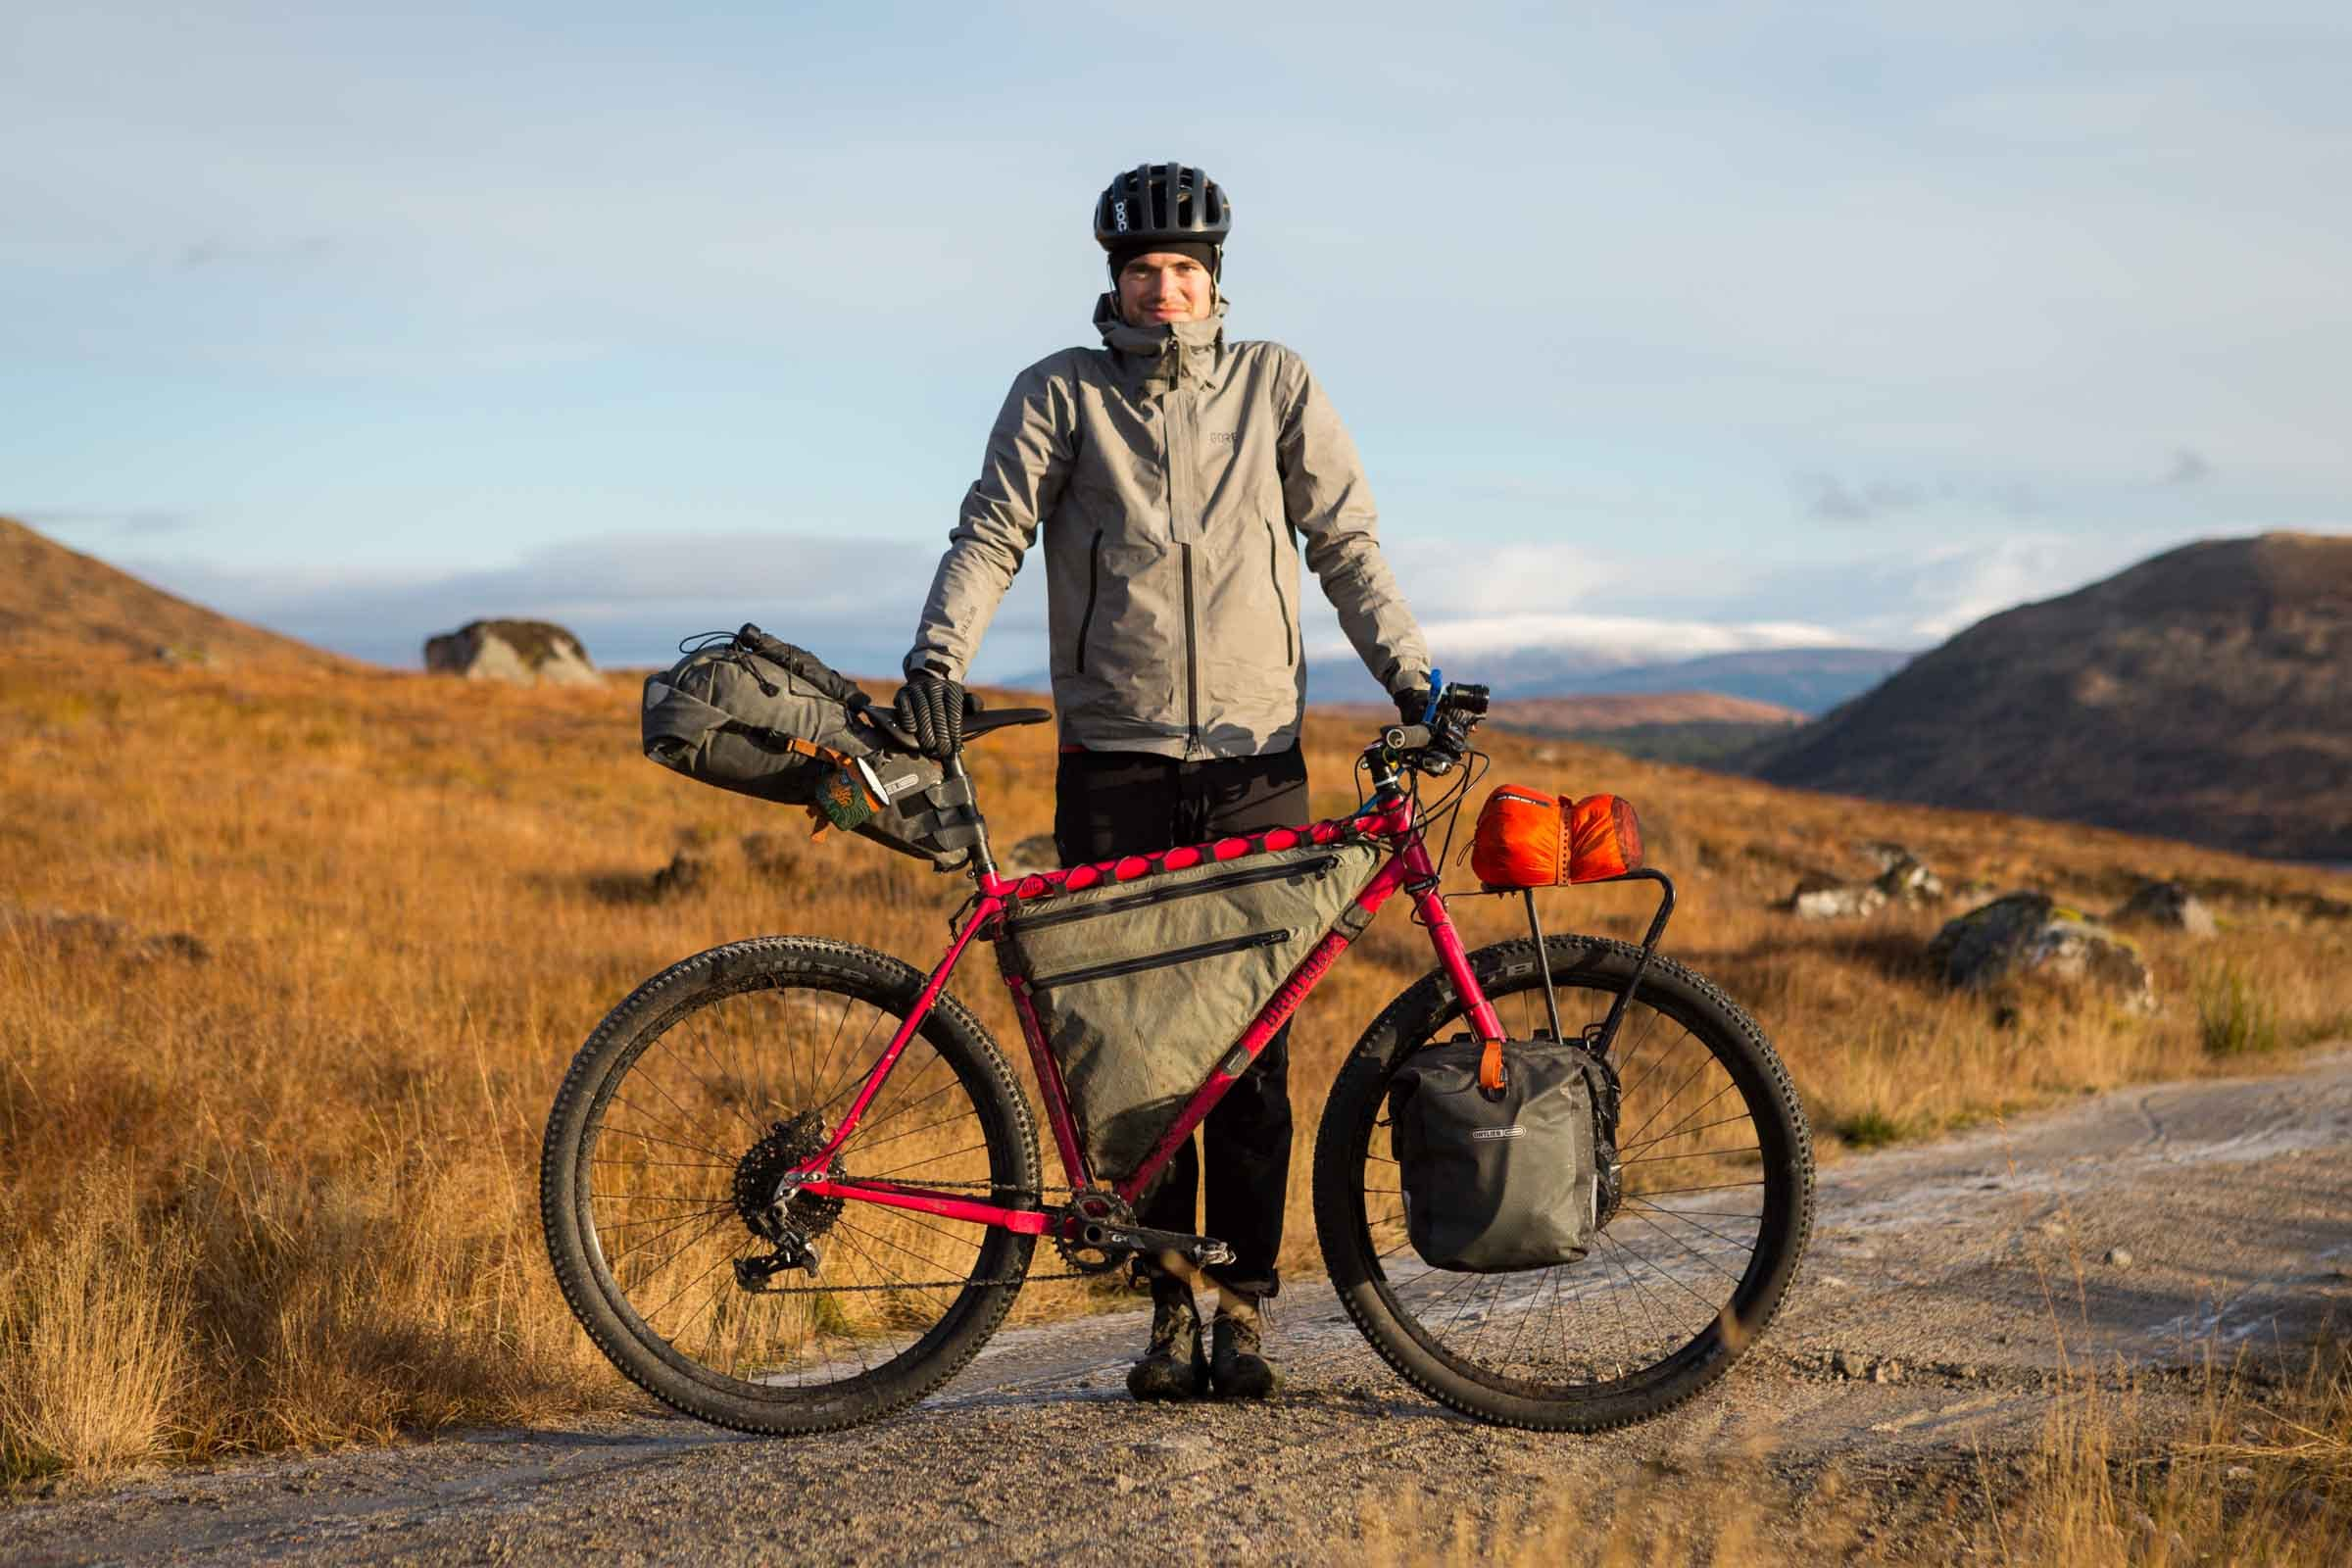 Pannier_Rainspotting_Bikepacking-Scotland-Highlands_061